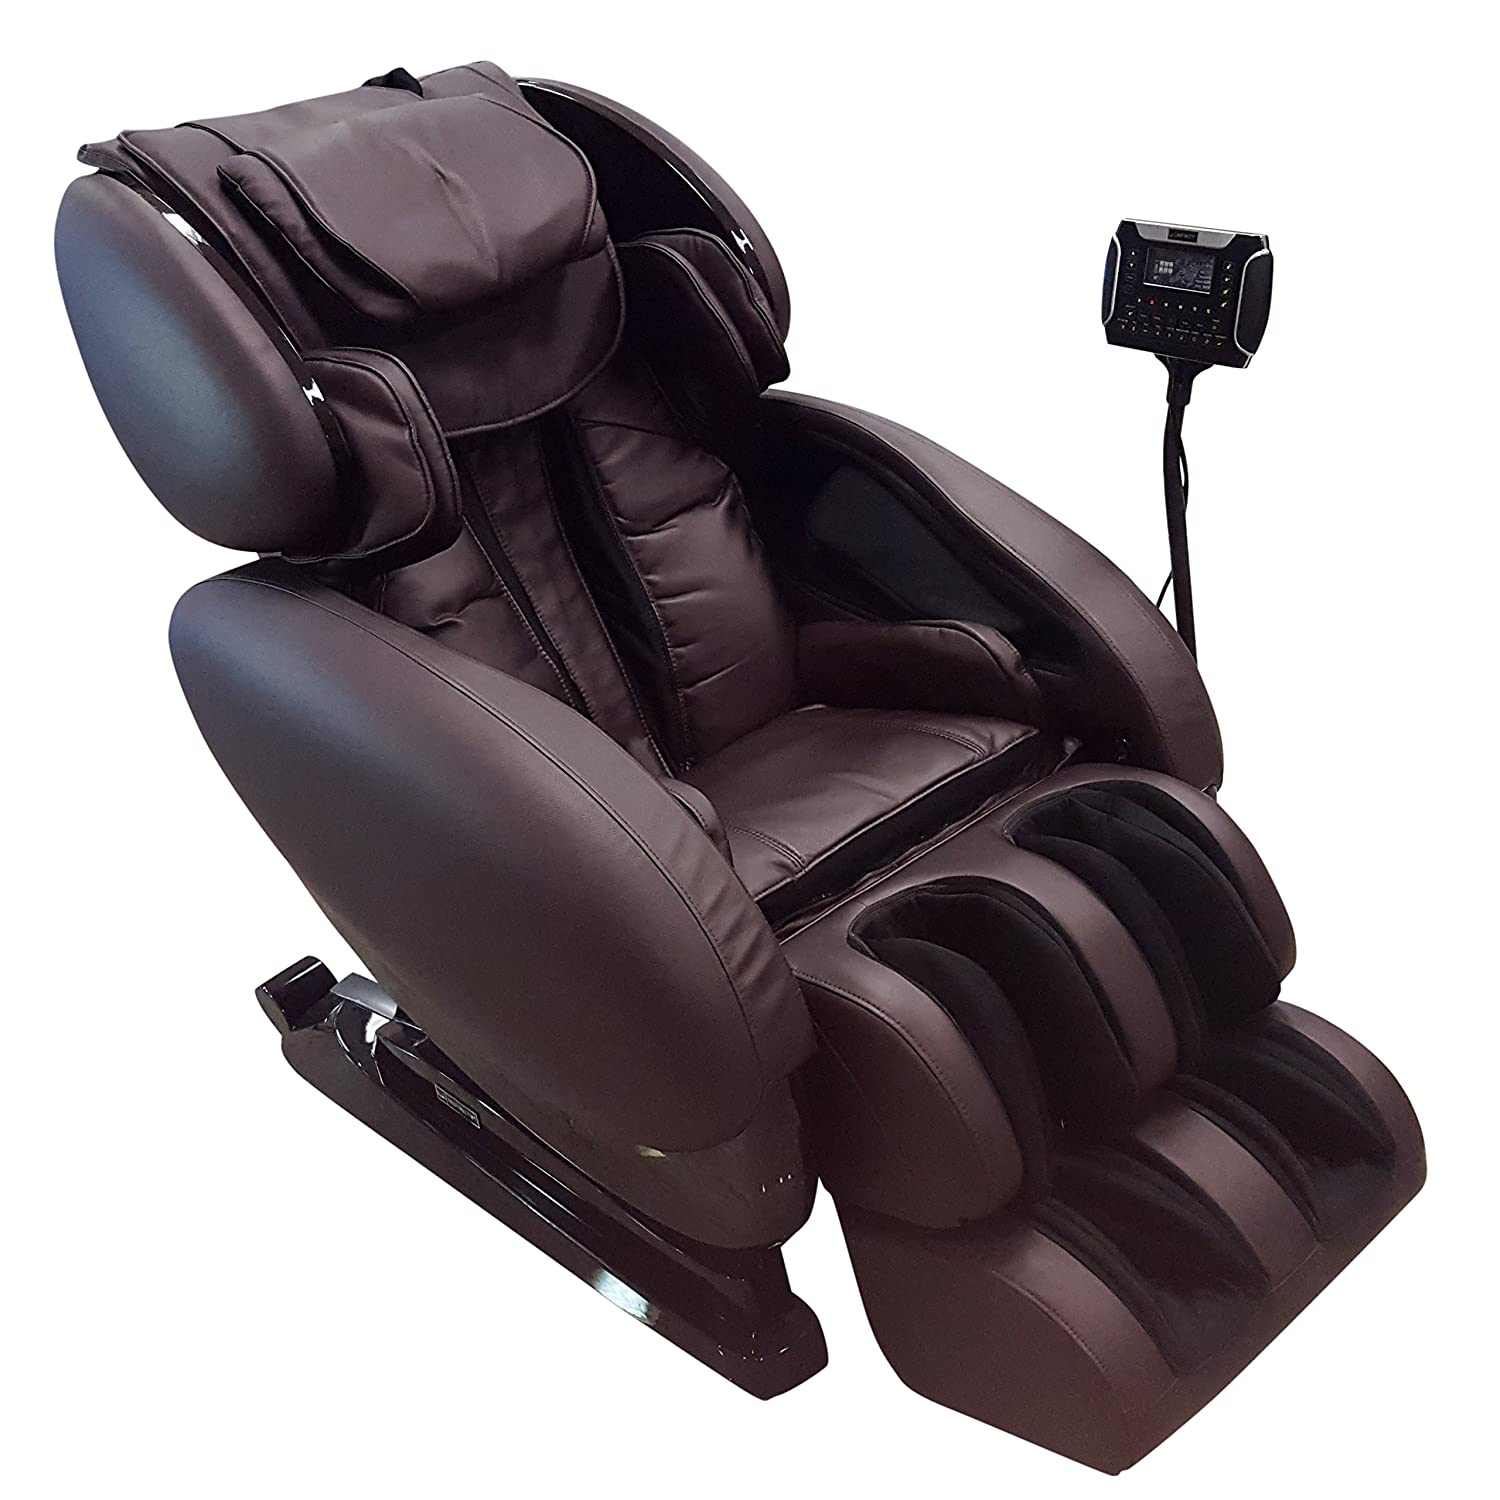 Amazon Infinity IT 8500X3 EB 3D Massage Chair Chocolate